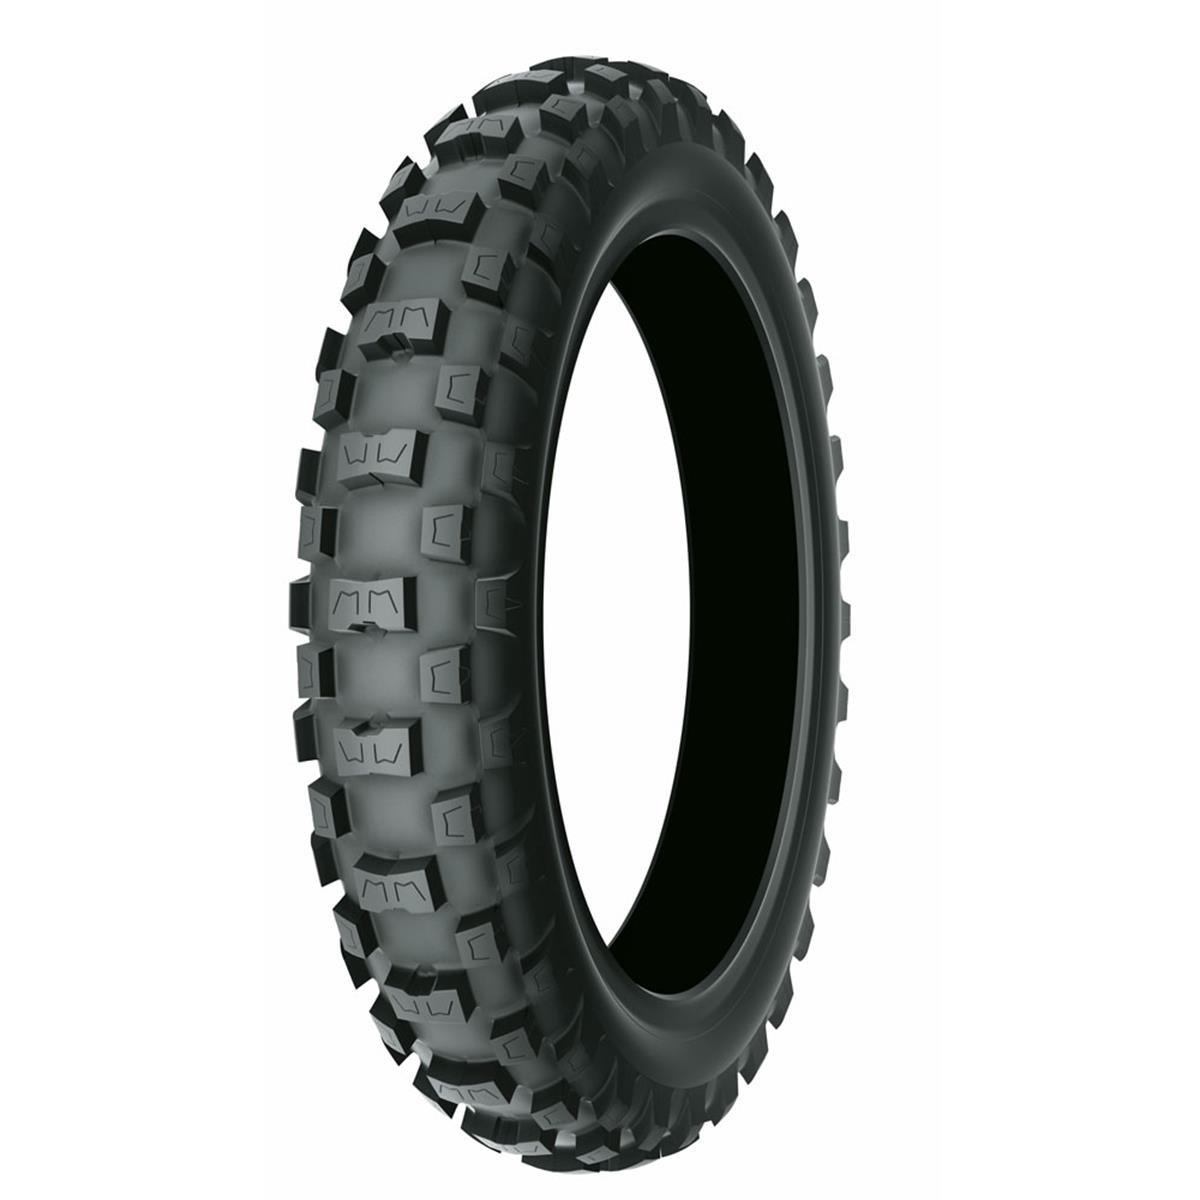 Michelin Hinterradreifen Starcross Junior MH 3 80/100-12